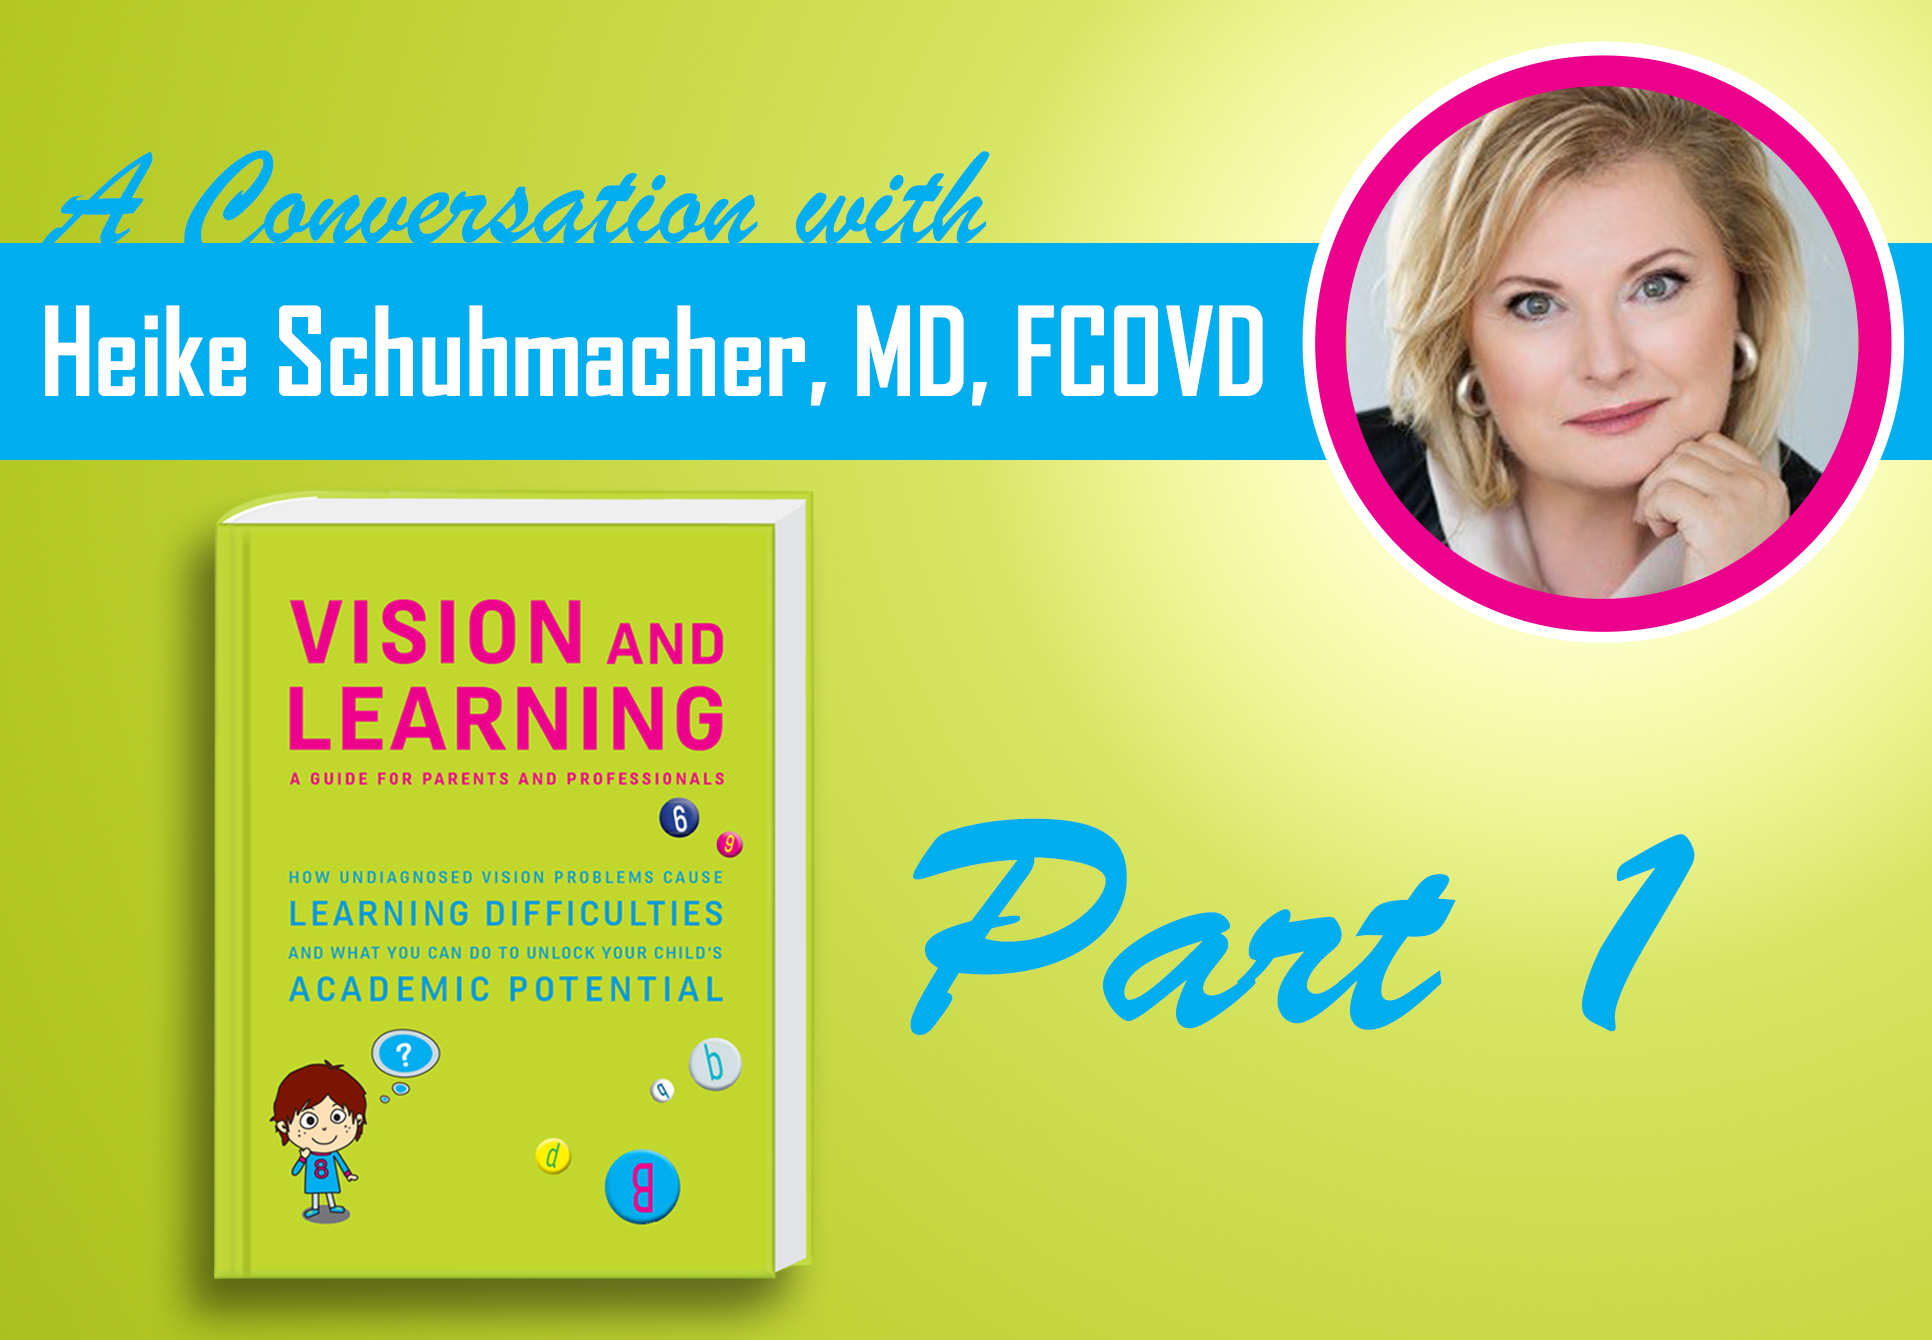 The origin story of Germany's premier book on vision & learning